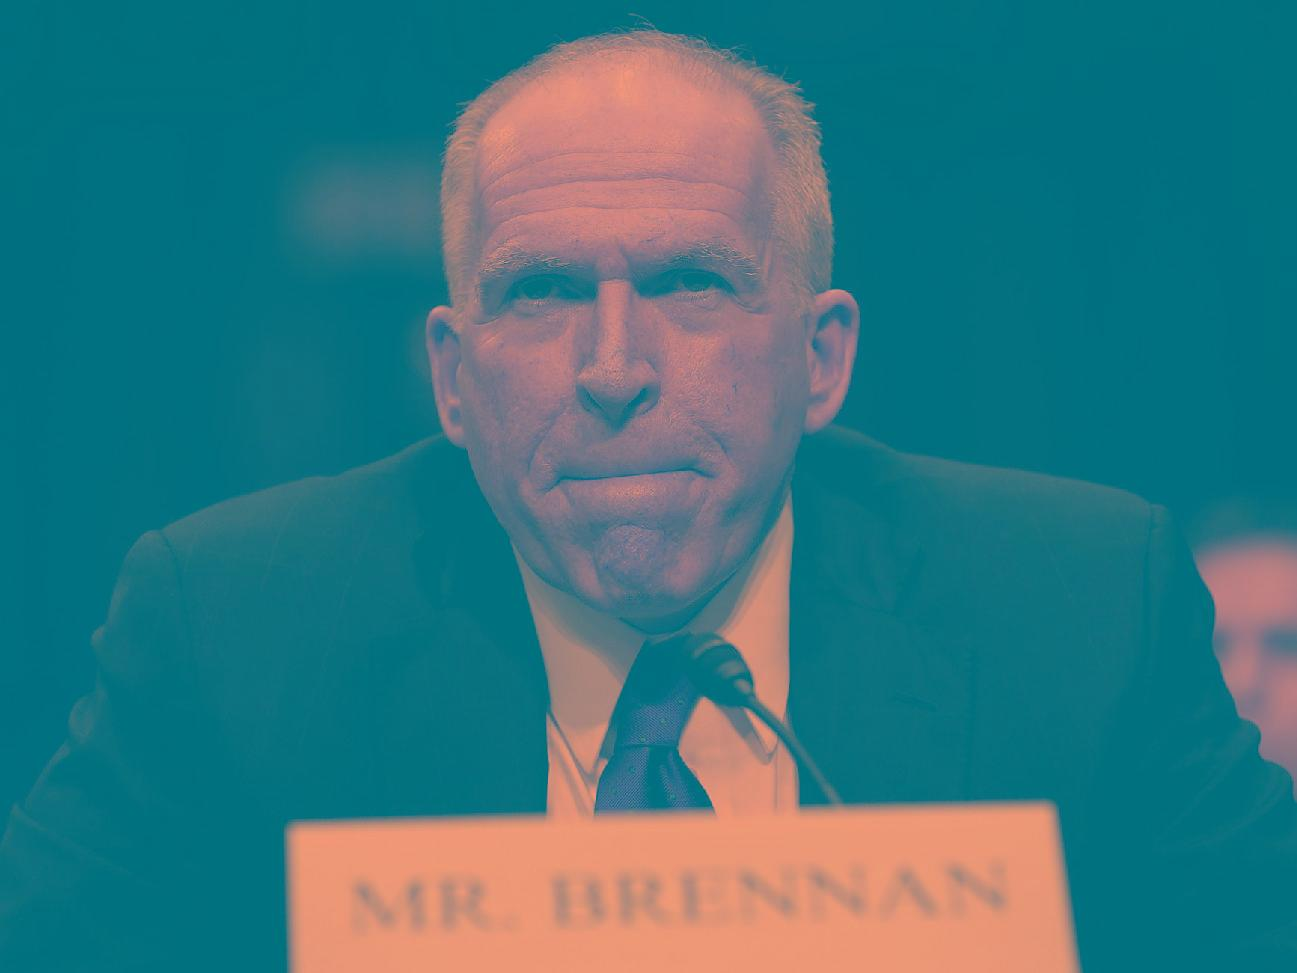 CIA director: The Middle East is the worst it's been in 50 years with 'unprecedented' bloodshed